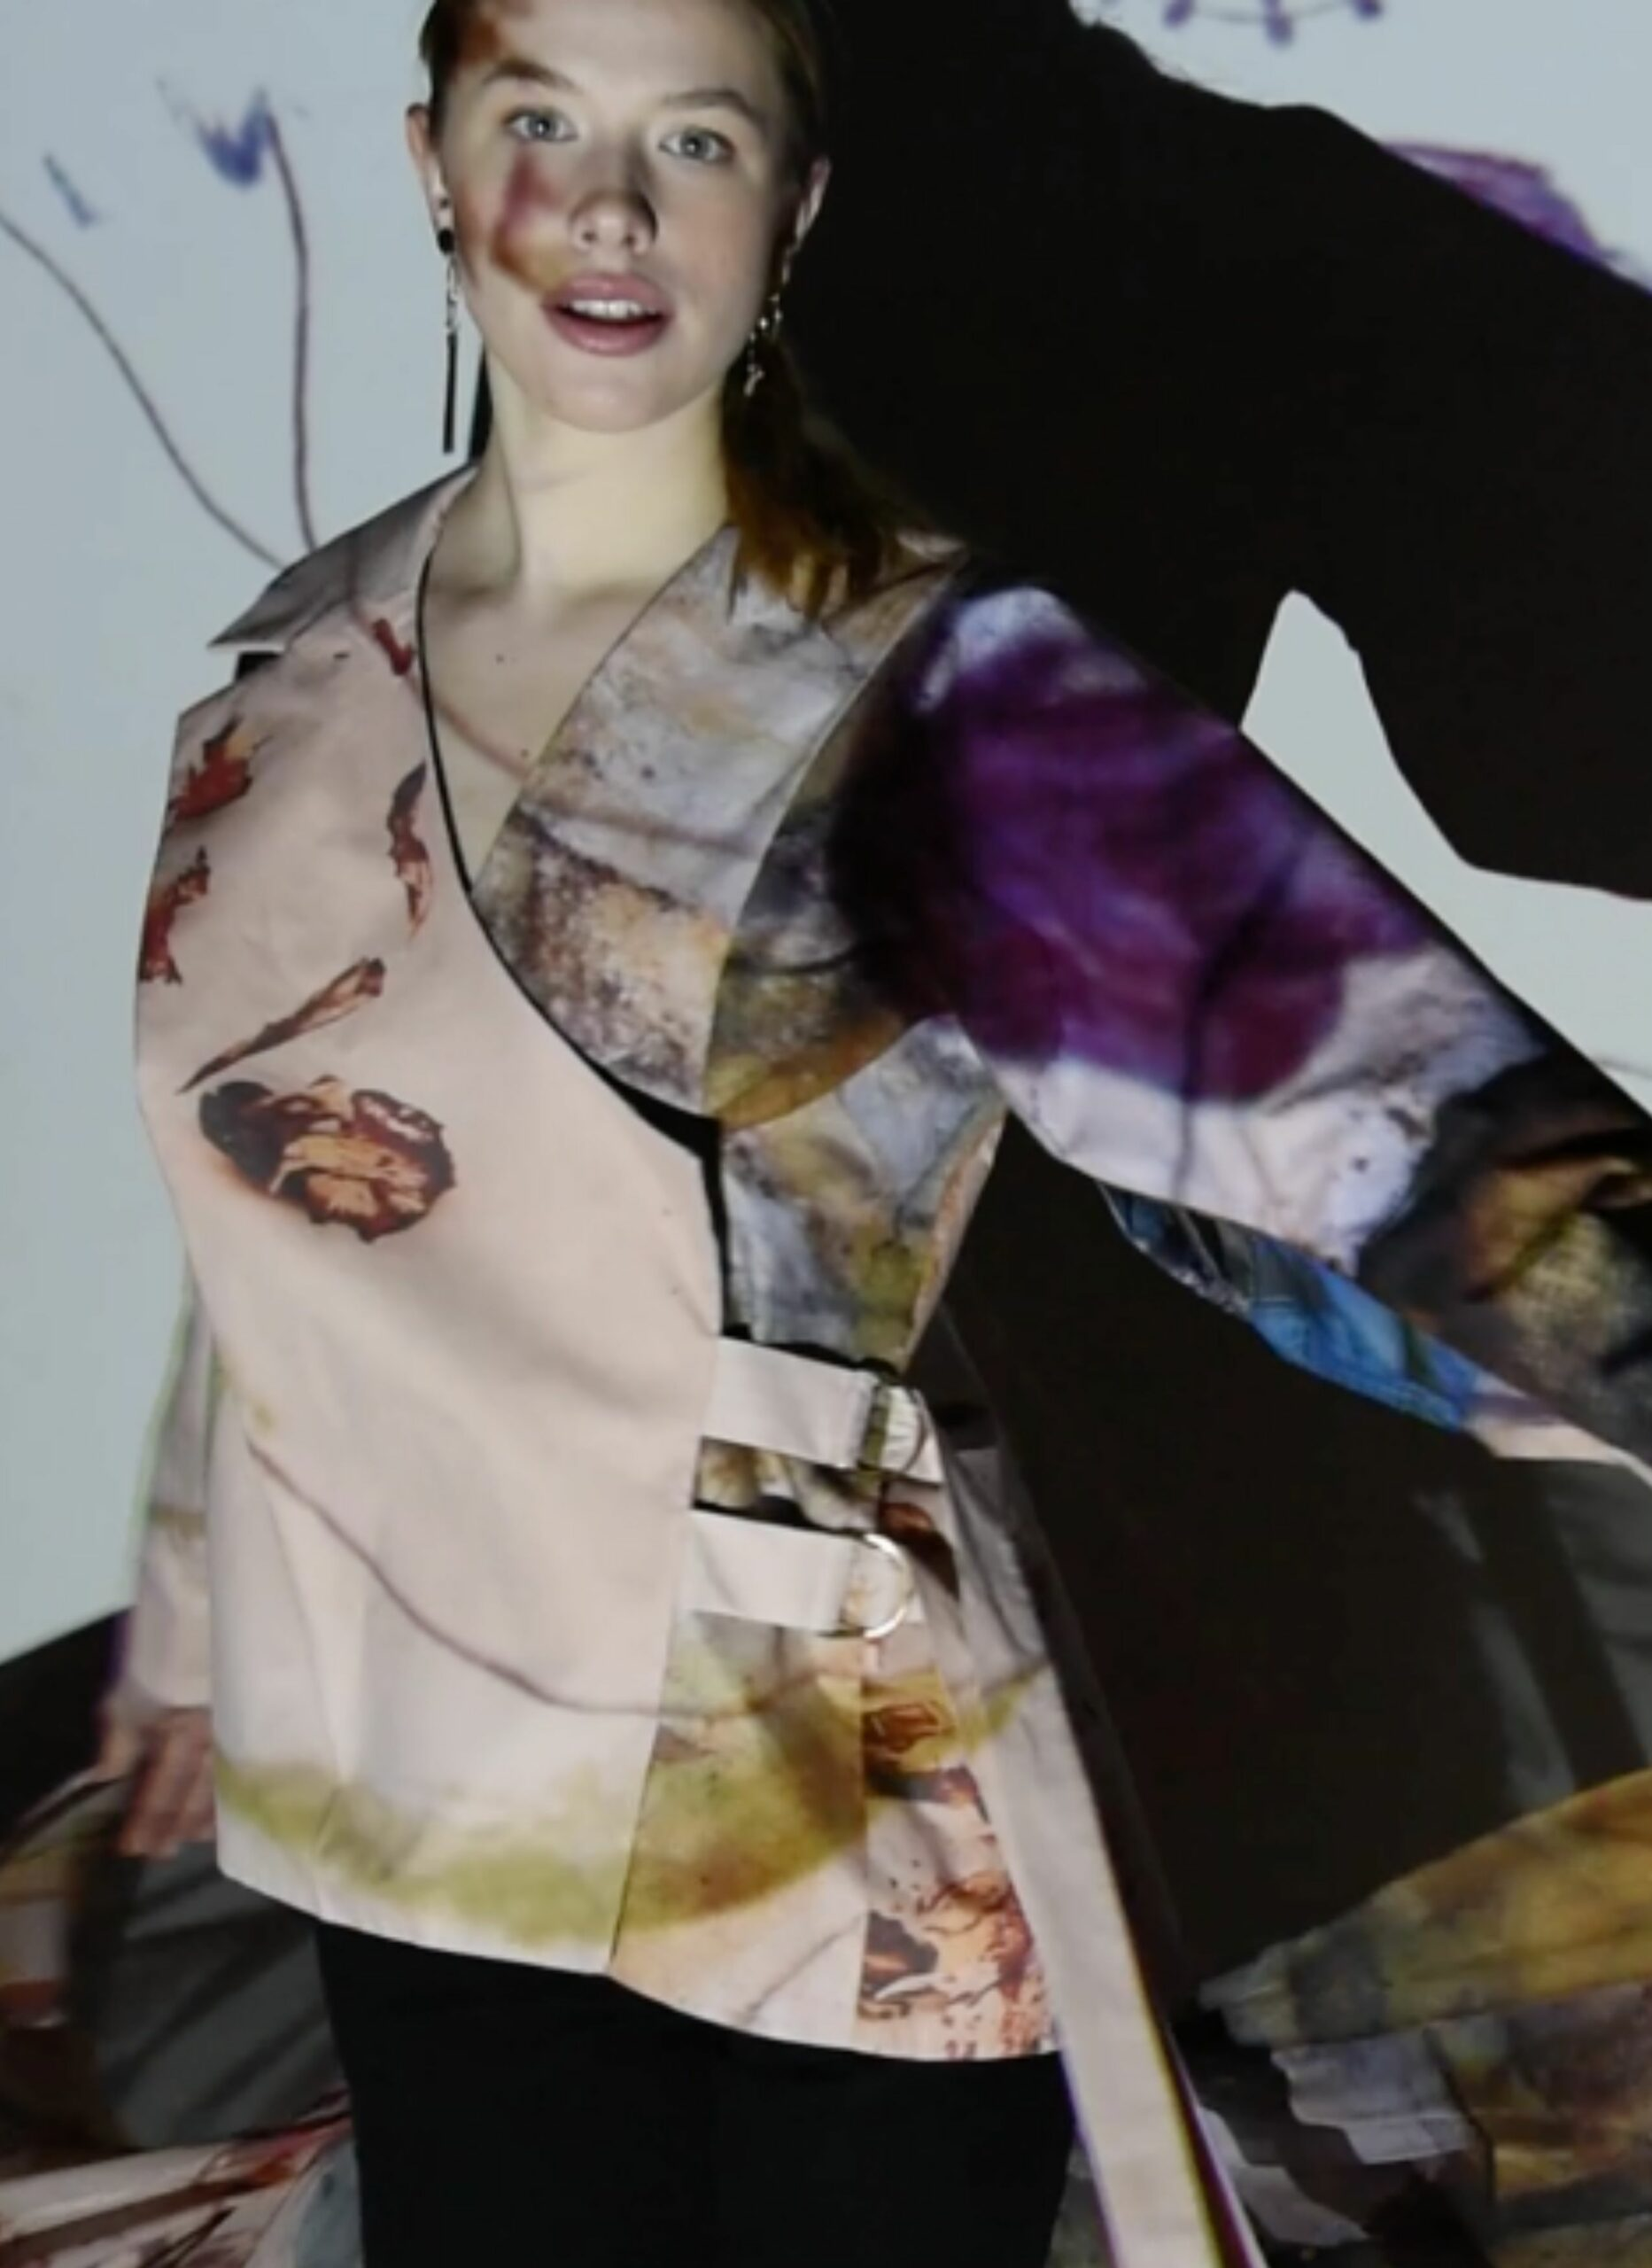 Model wearing layered top with photos printed on it